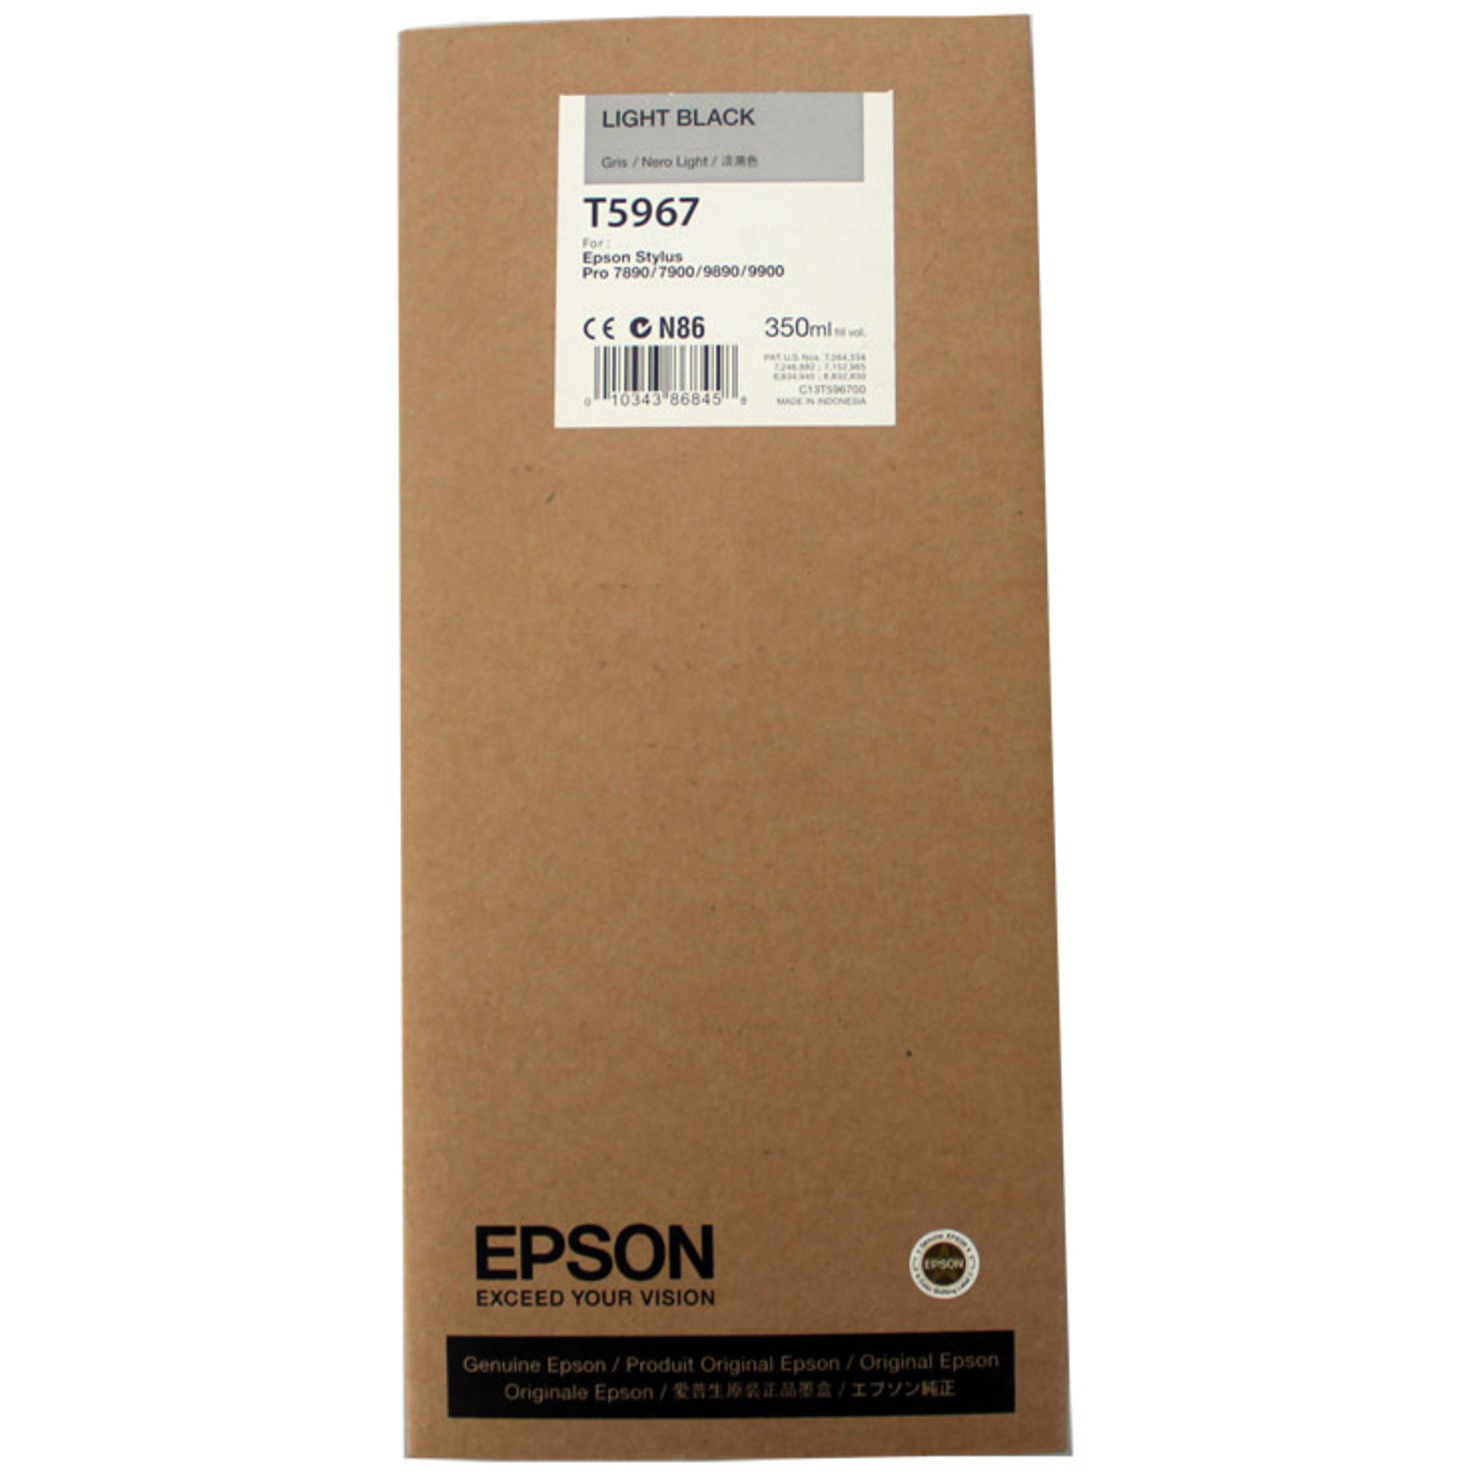 Original Epson T5967 Light Black Ink Cartridge (C13T596700)